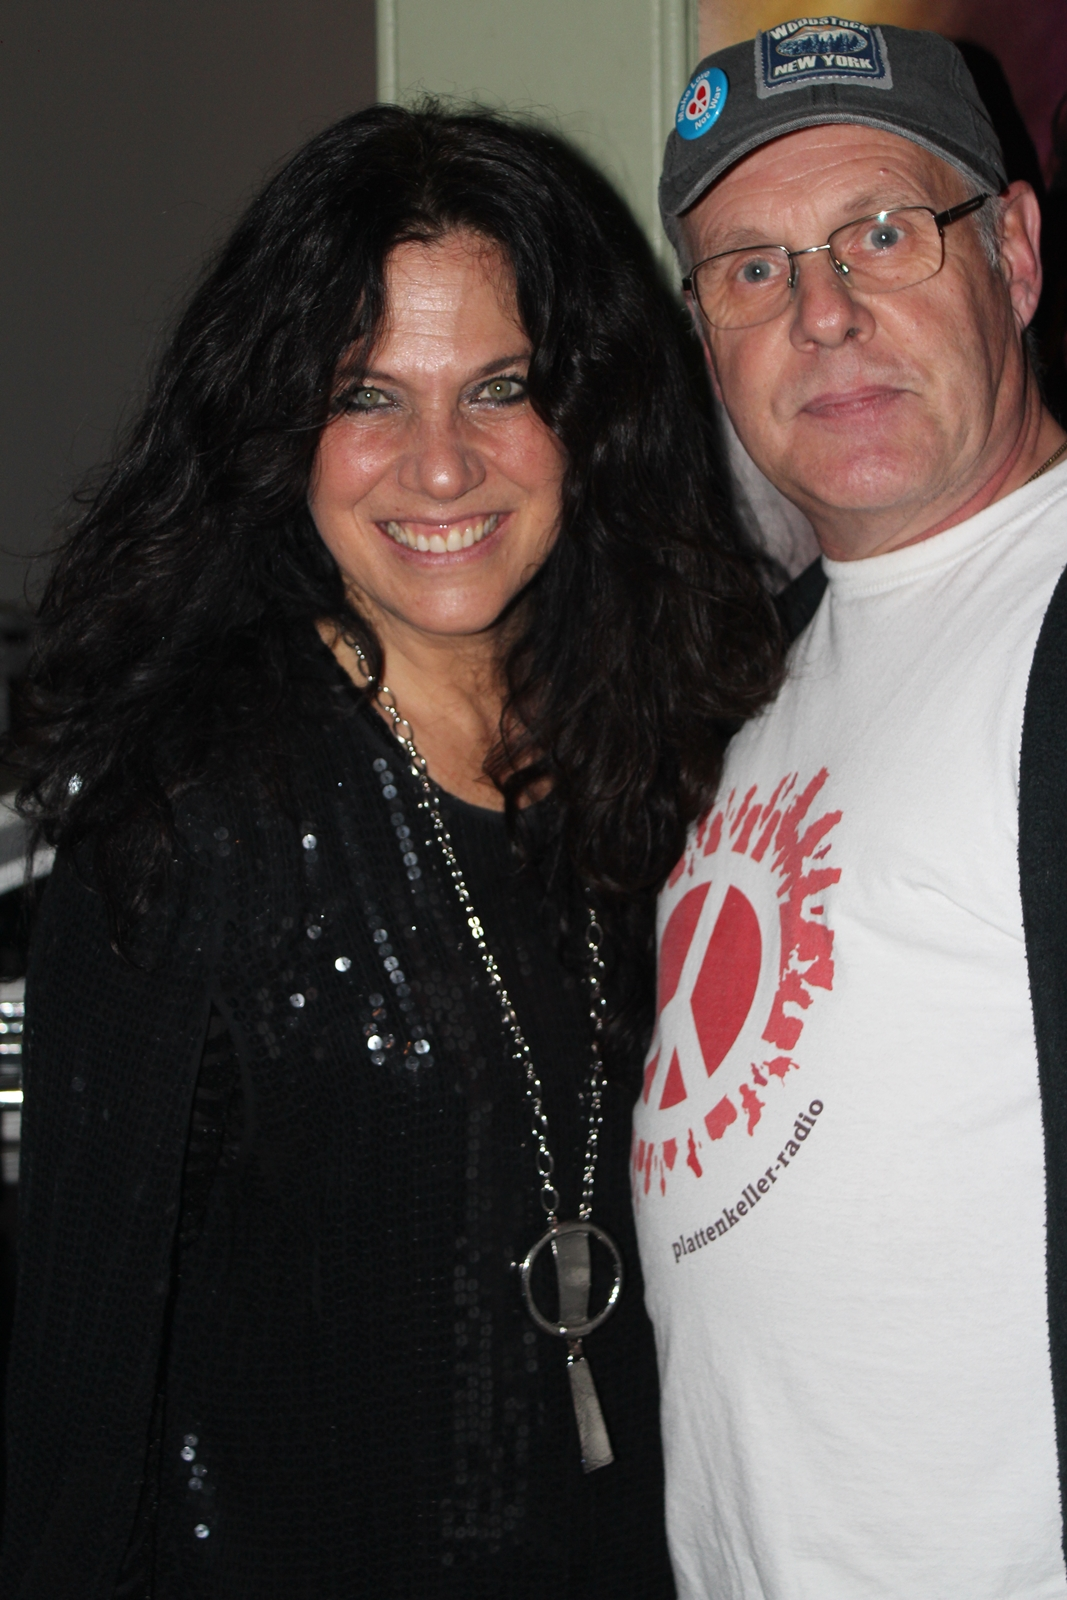 Sari Schorr (USA) mit Stephan beim Winterblues 2018 in Udestedt